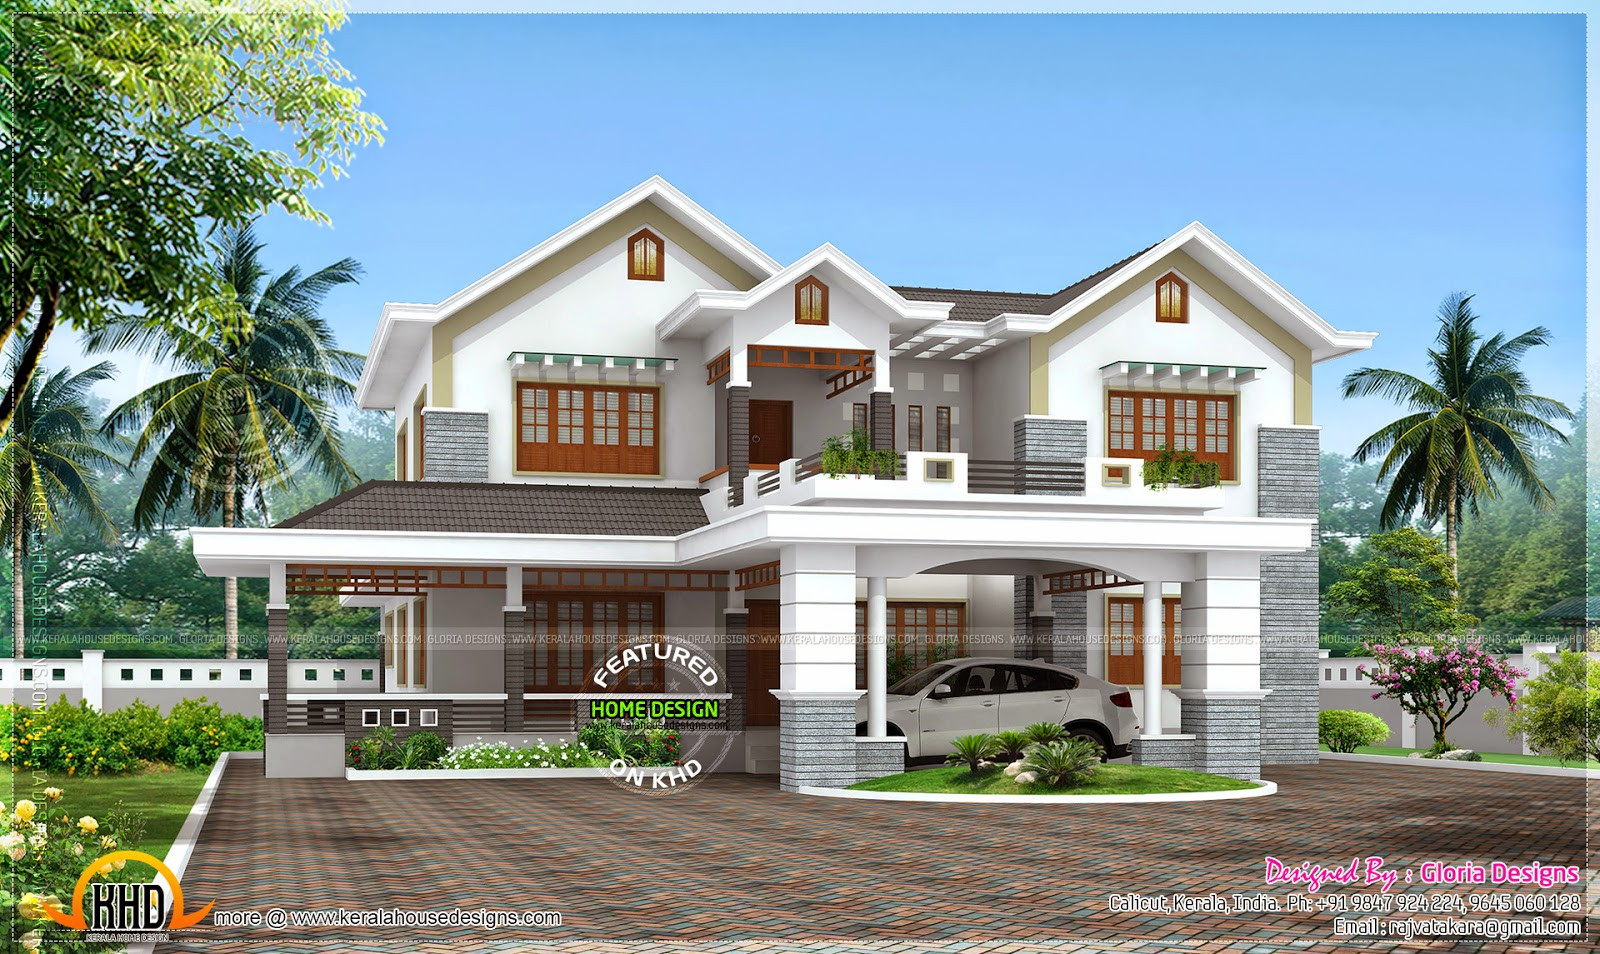 News and article online may 2014 for Best house designs 2012